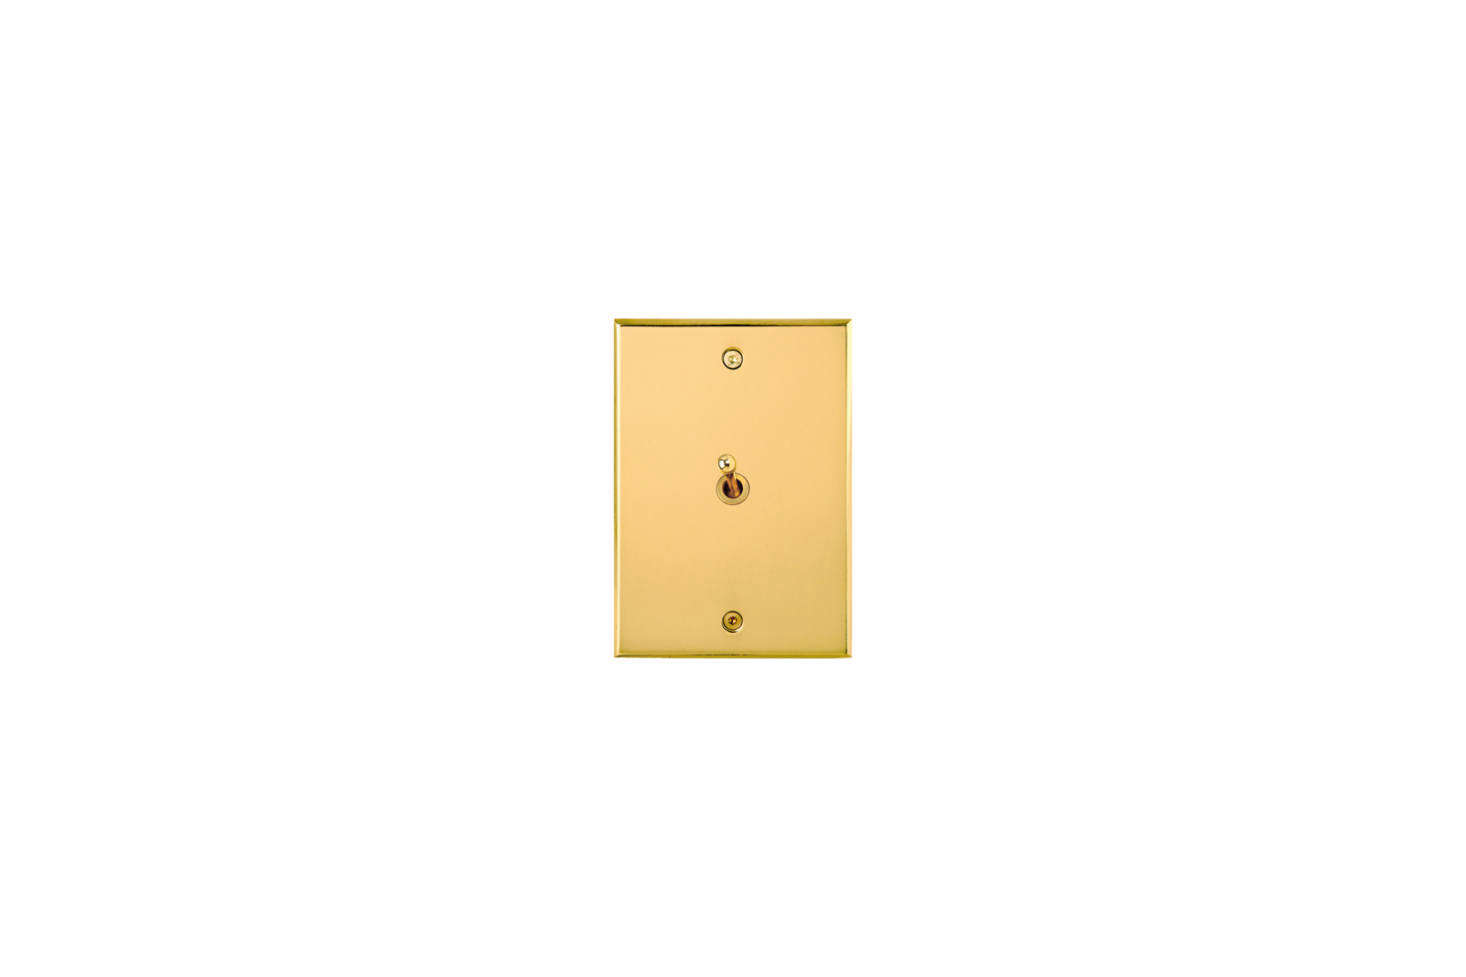 For a similar classic brass French-style light switch and dimmer, Meljac&#8